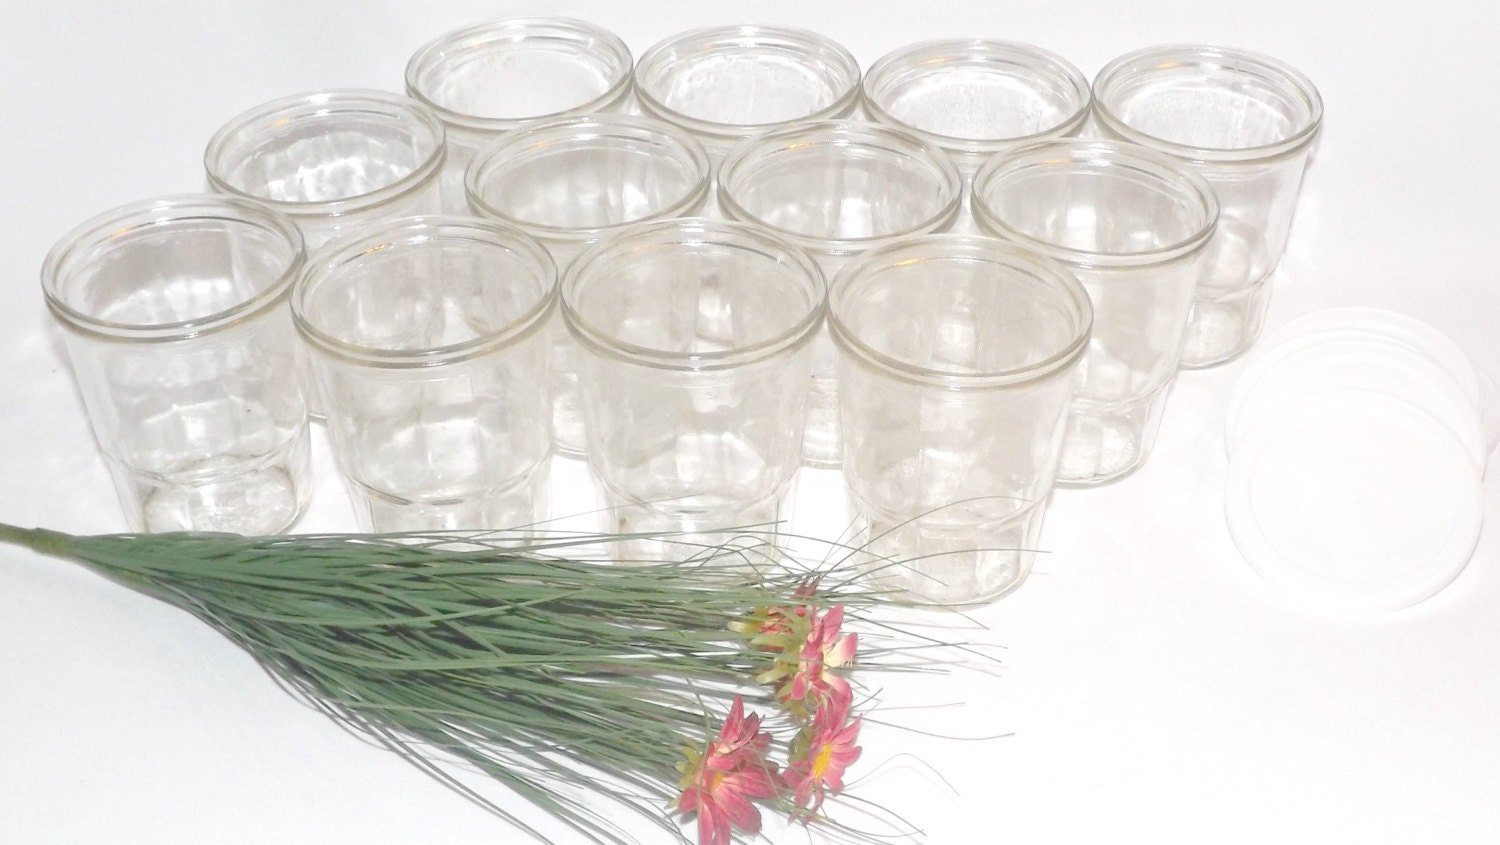 Ball Jelly Jars Glasses Case 12 New Old Stock By Selectivities